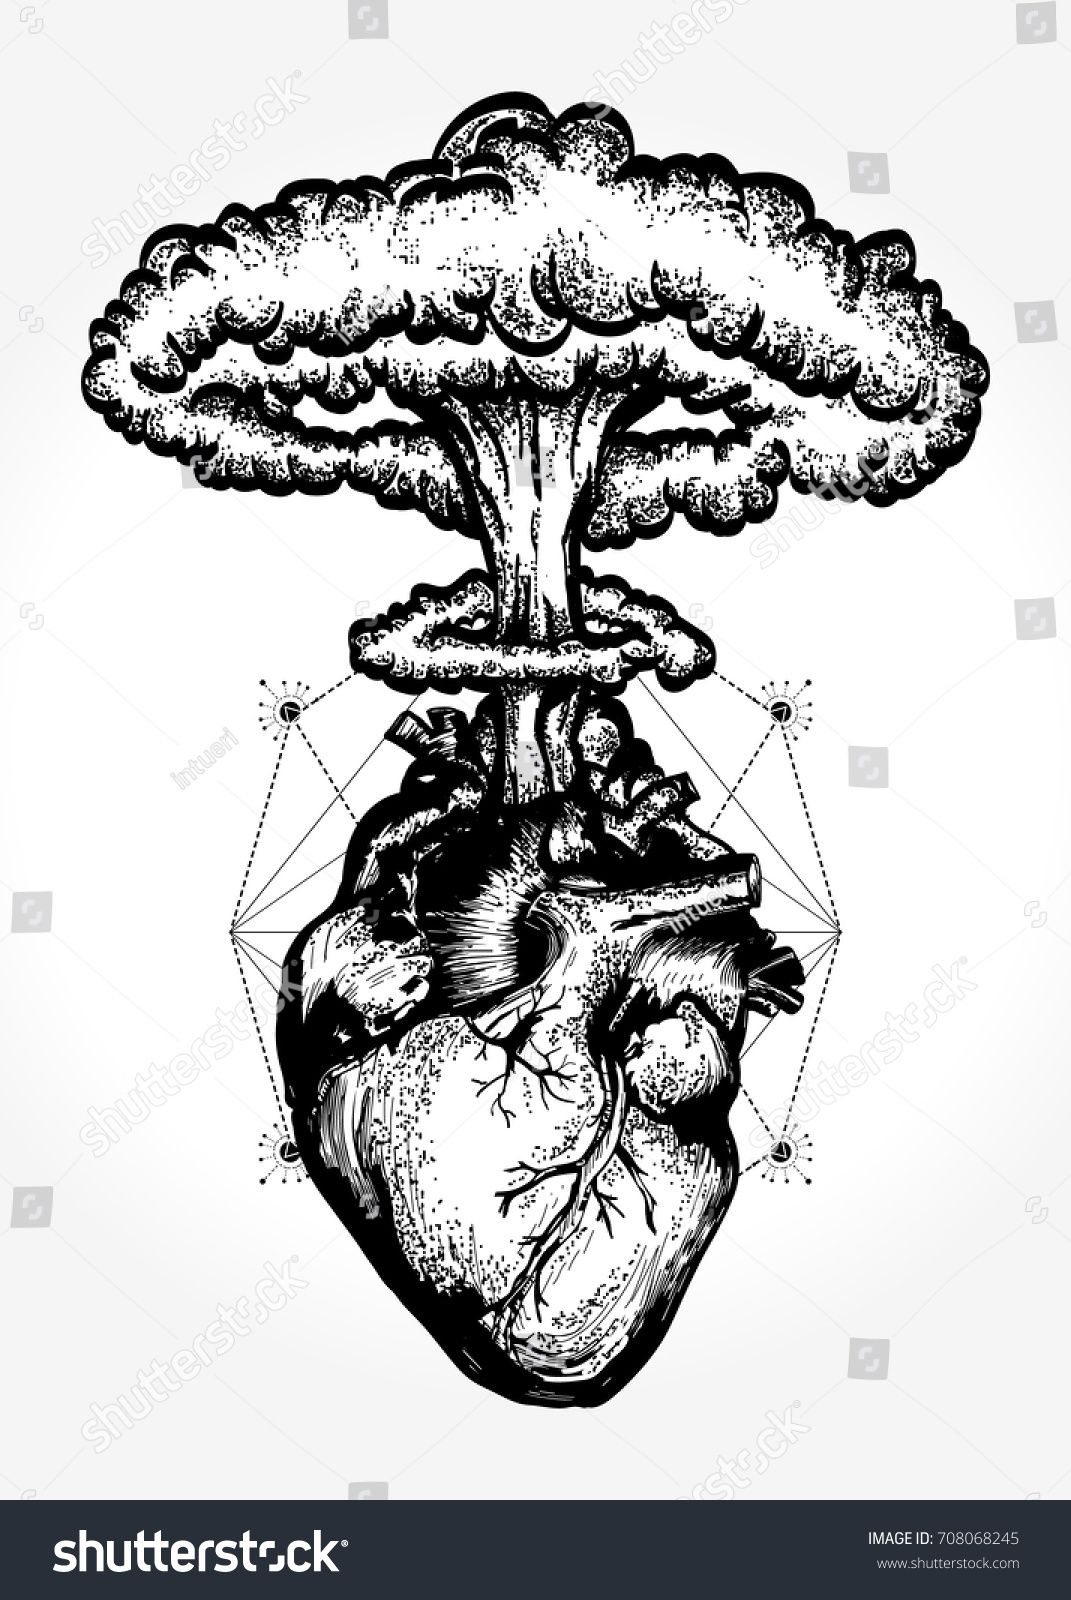 nuclear explosion of anatomical heart tshirt design